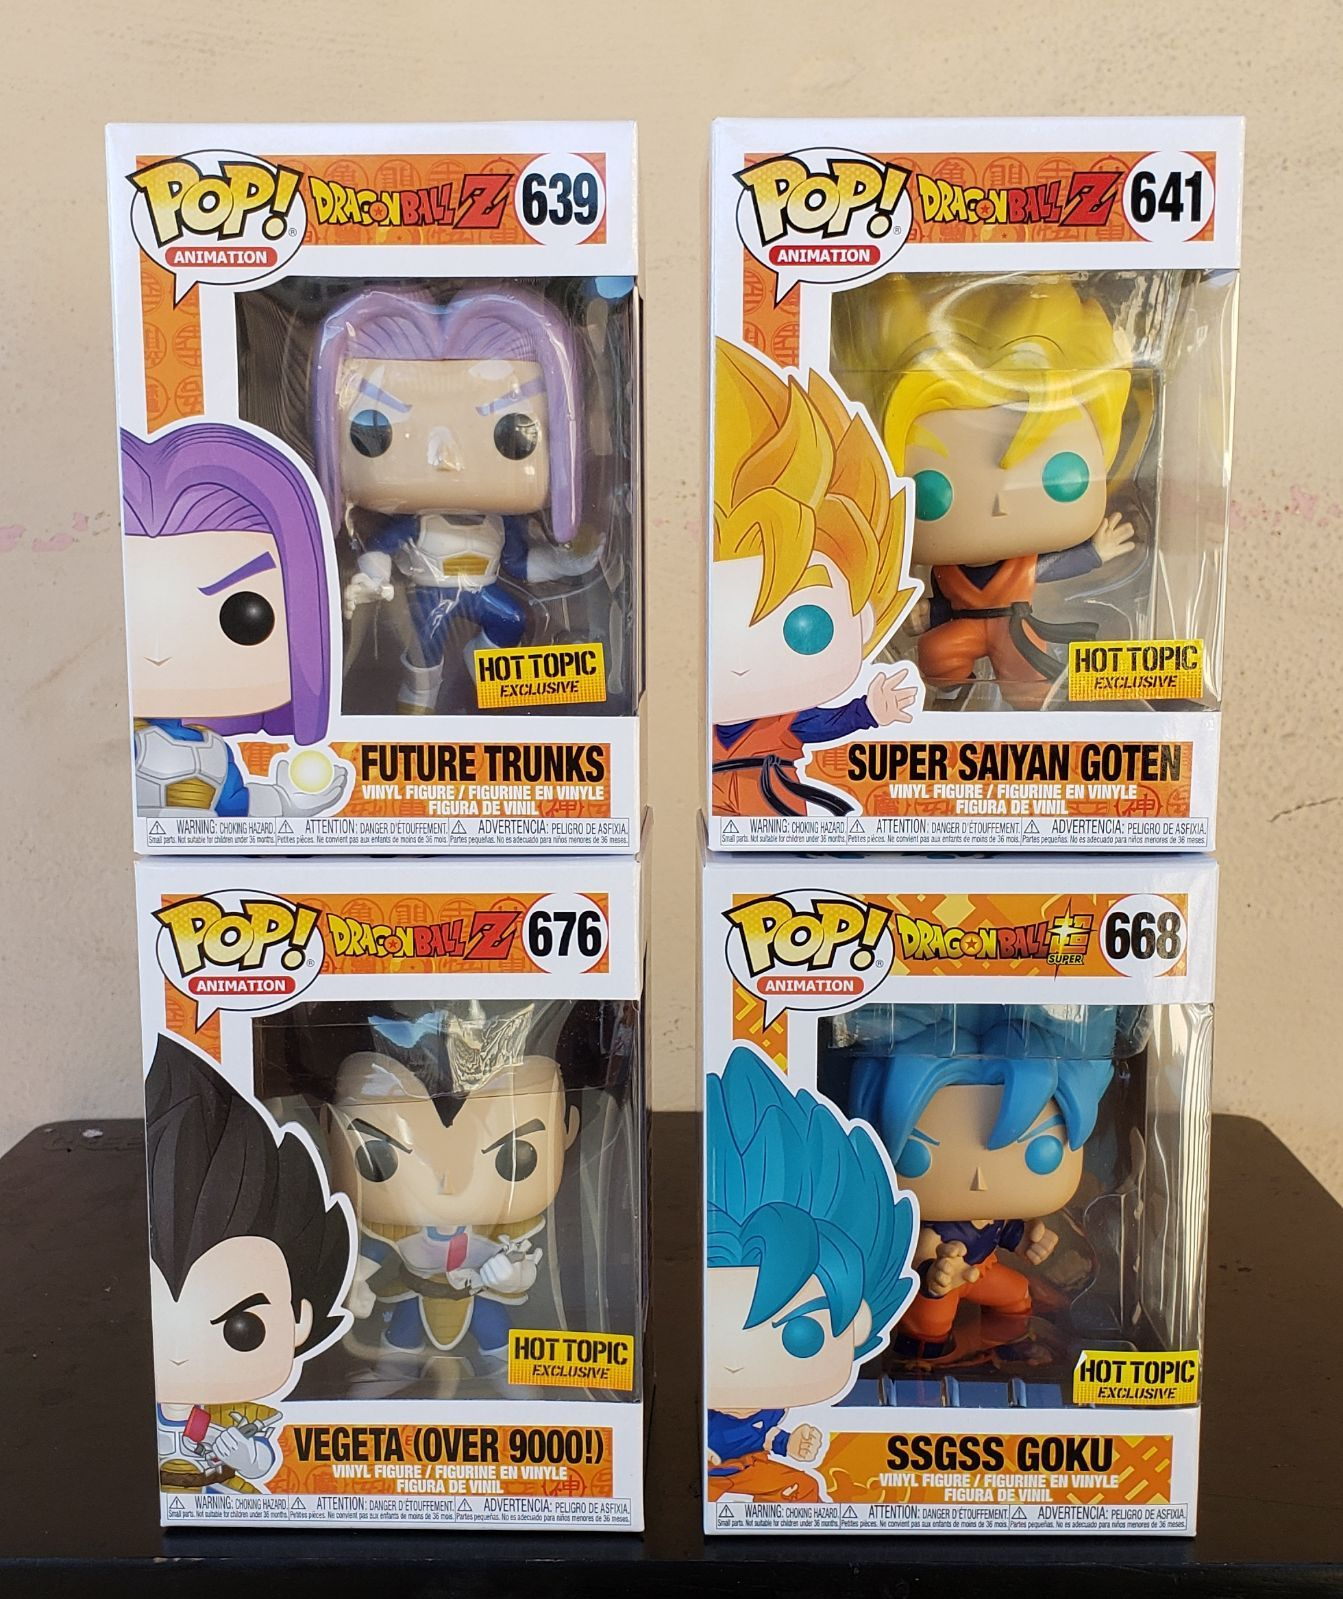 Brand New In Near Mint Condition Funko Pop Dragon Ball Z Will Be Shipped In Sorter Boxes Future Trunks 639 Goku And Gohan Vinyl Figures Trunks Super Saiyan